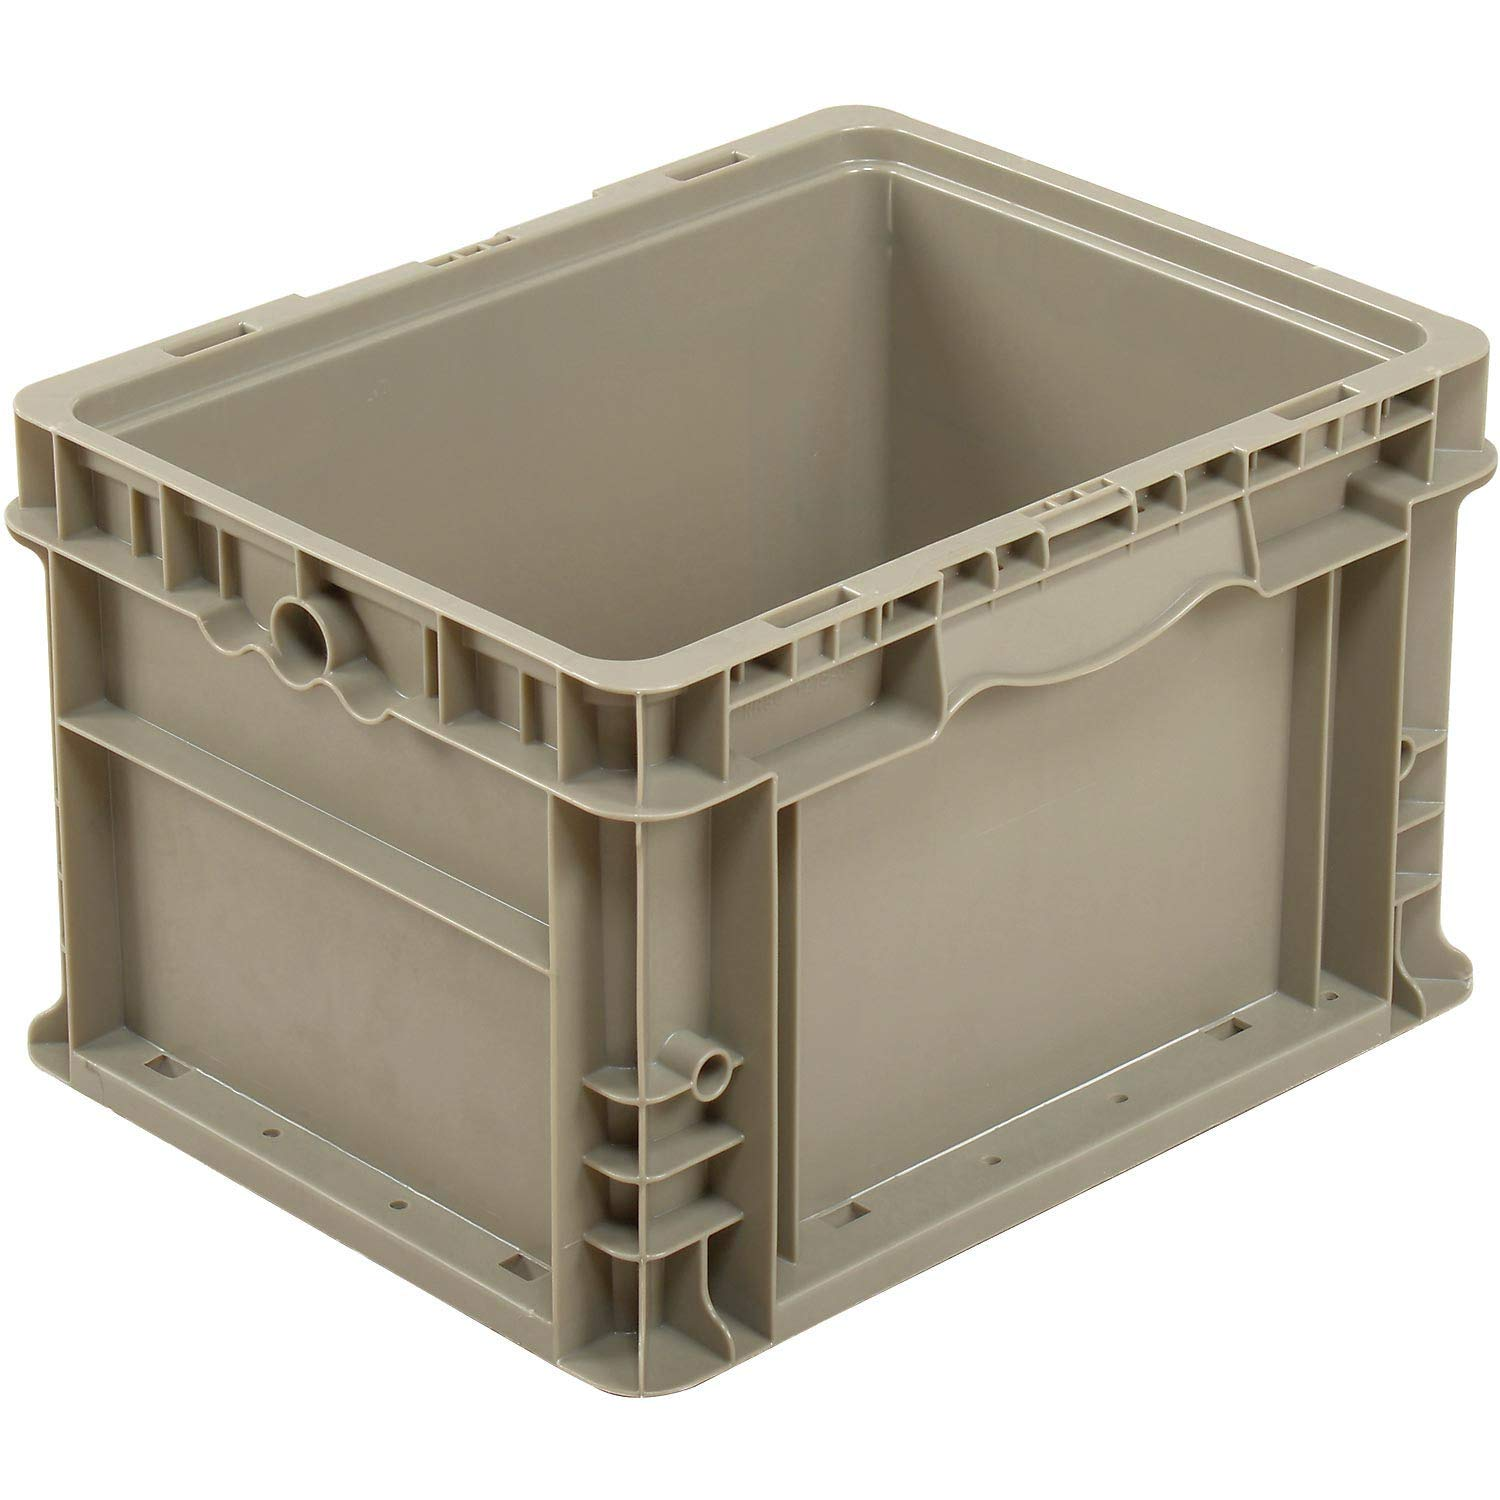 Straight Wall Container Solid Sides Base - Reusable Stackable Moving Storage Bin Container Box Crate, 50 Lbs Capacity, Model # NRSO1215-09, 12 x 15 x 9, Gray by One Stop Shop